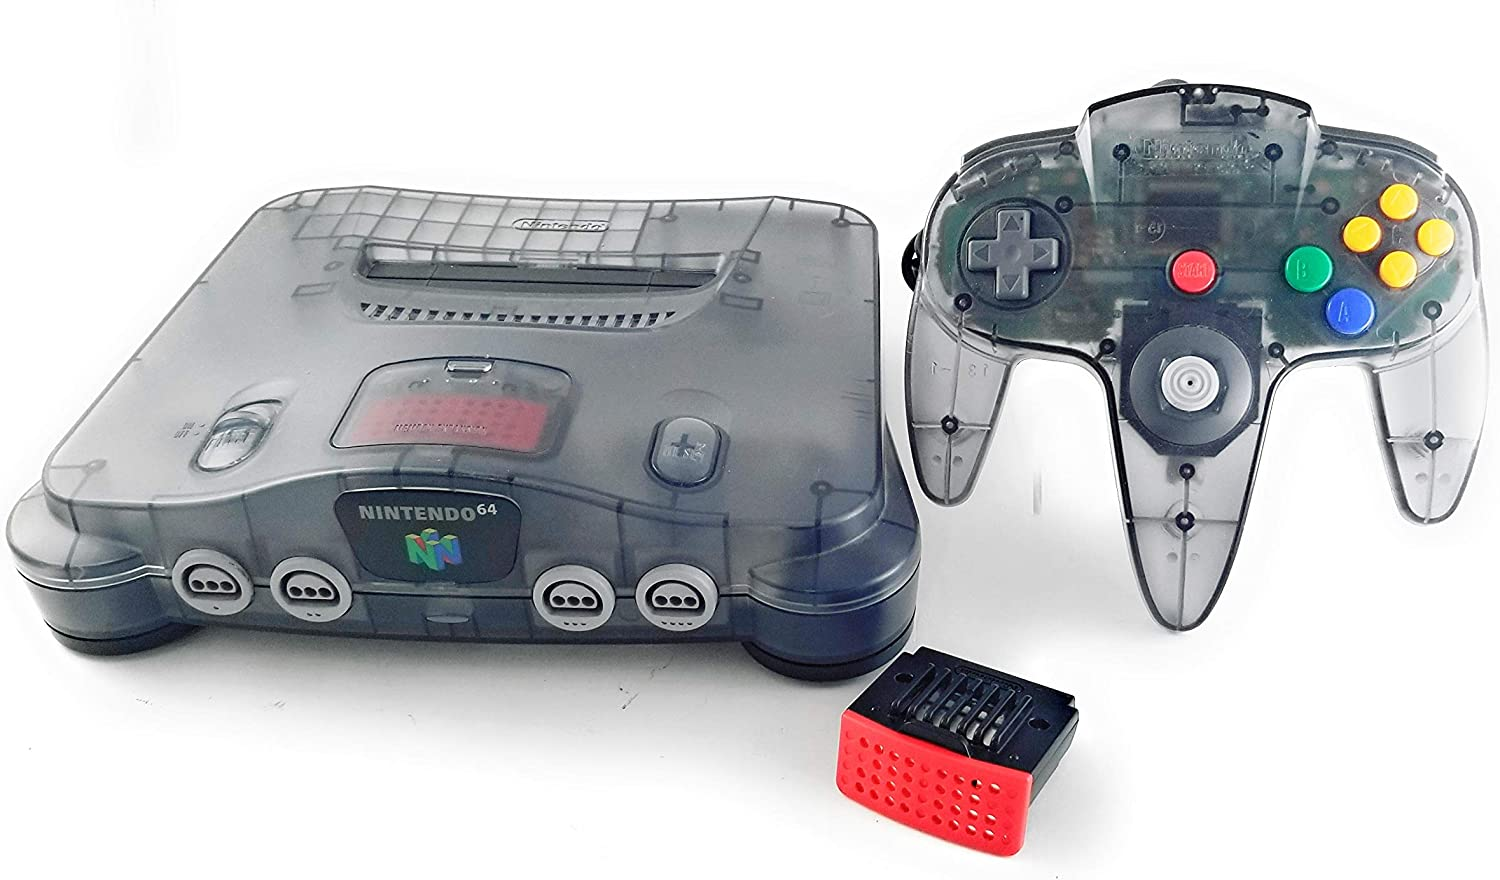 Amazon.com: Nintendo 64 System - Video Game Console ...